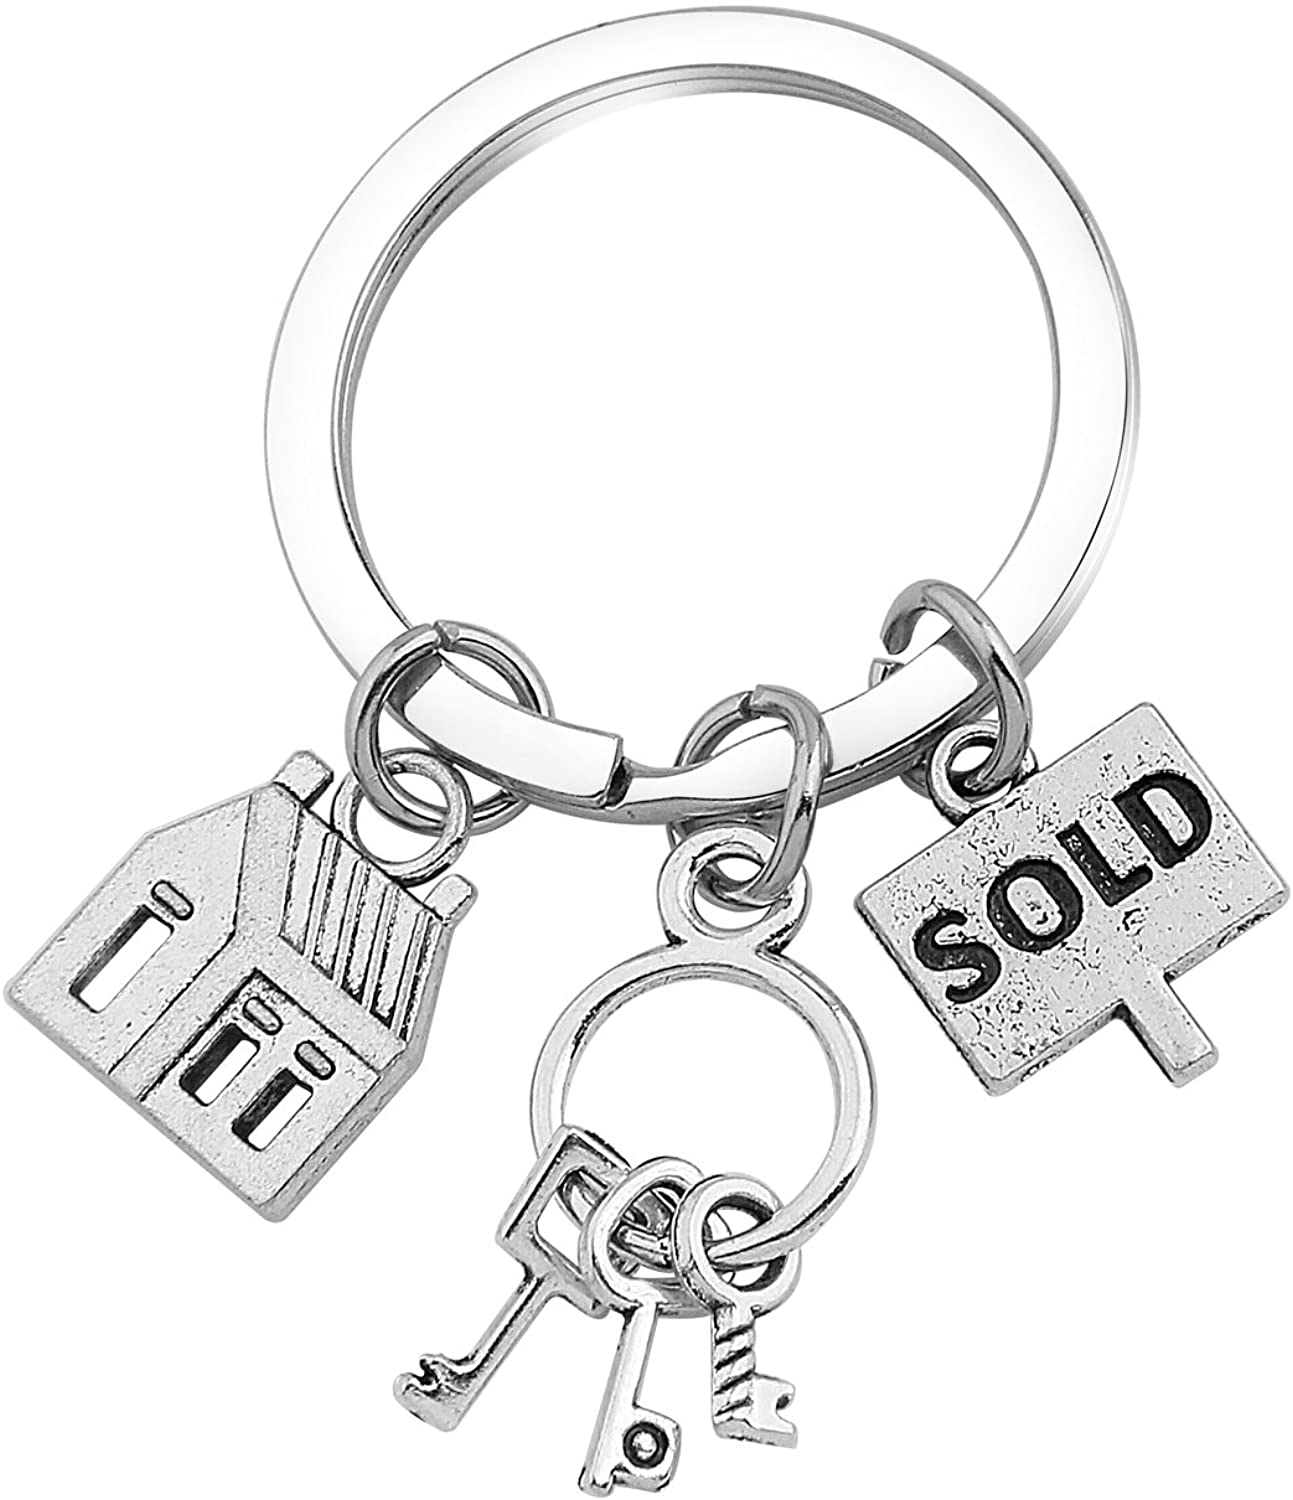 SEIRAA Real Estate Agent Charm Bangle Adjustable Wire Bracelets Stainless Steel Realtor Jewelry Gifts